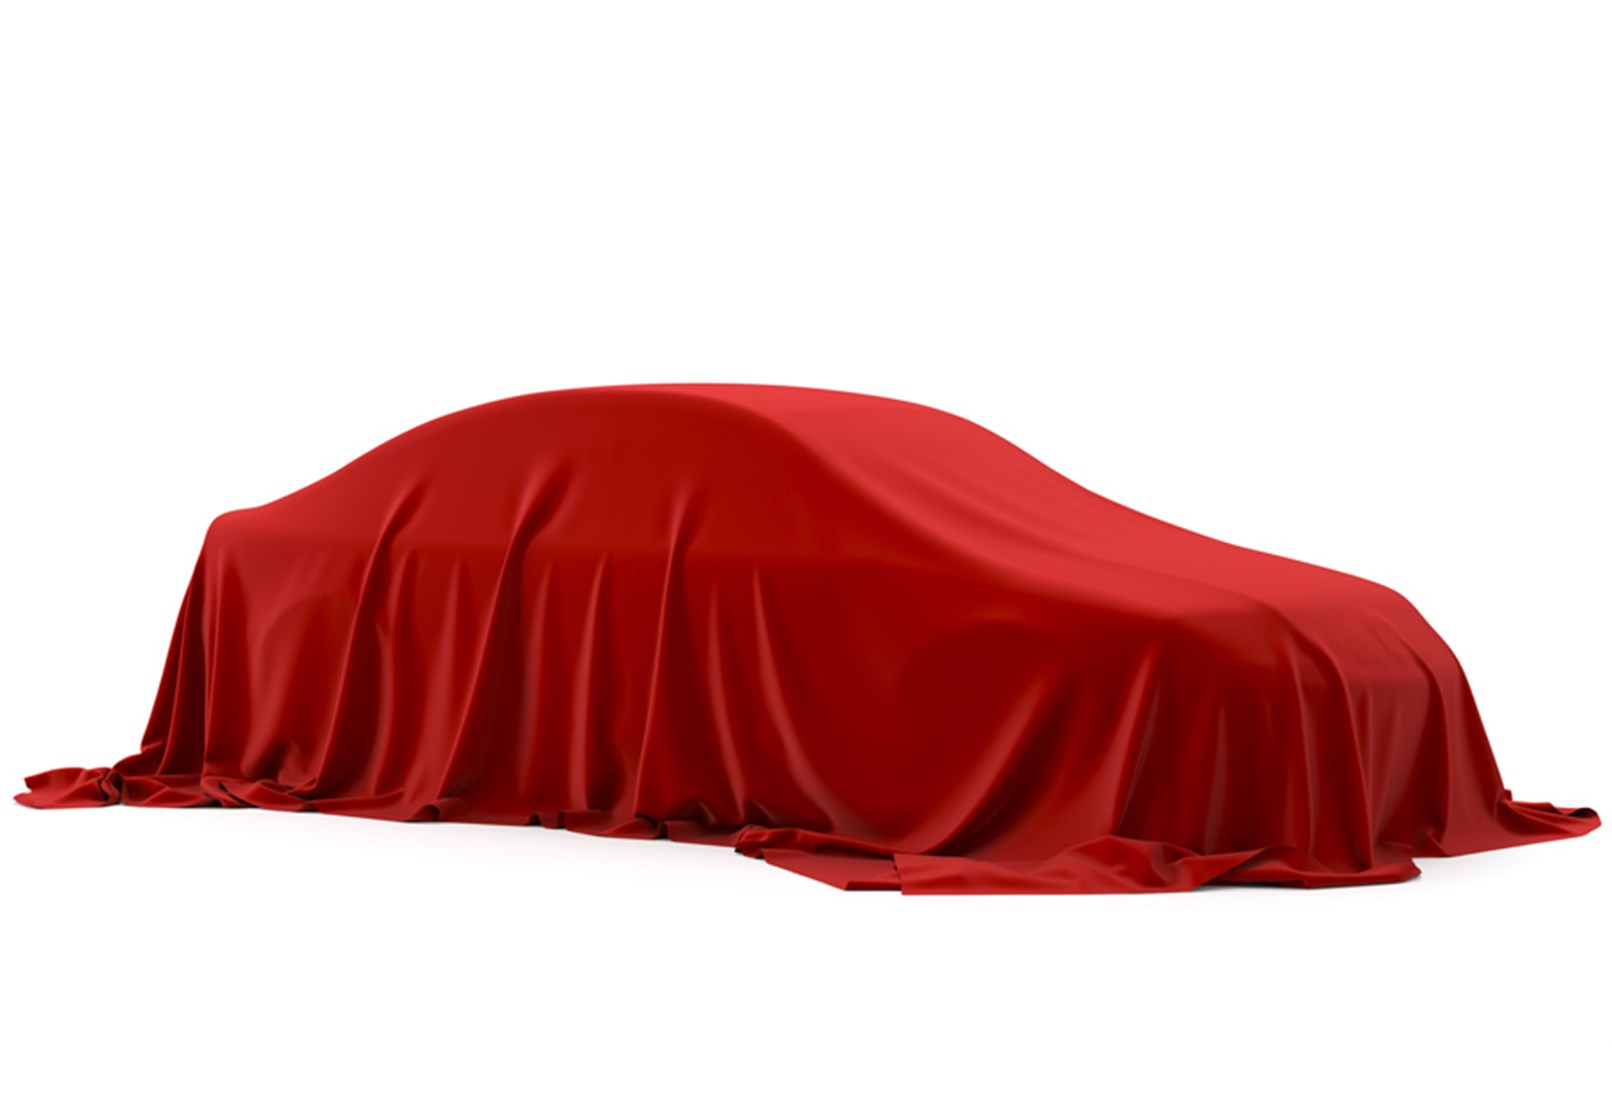 Coming Soon - Vehicle Unveil